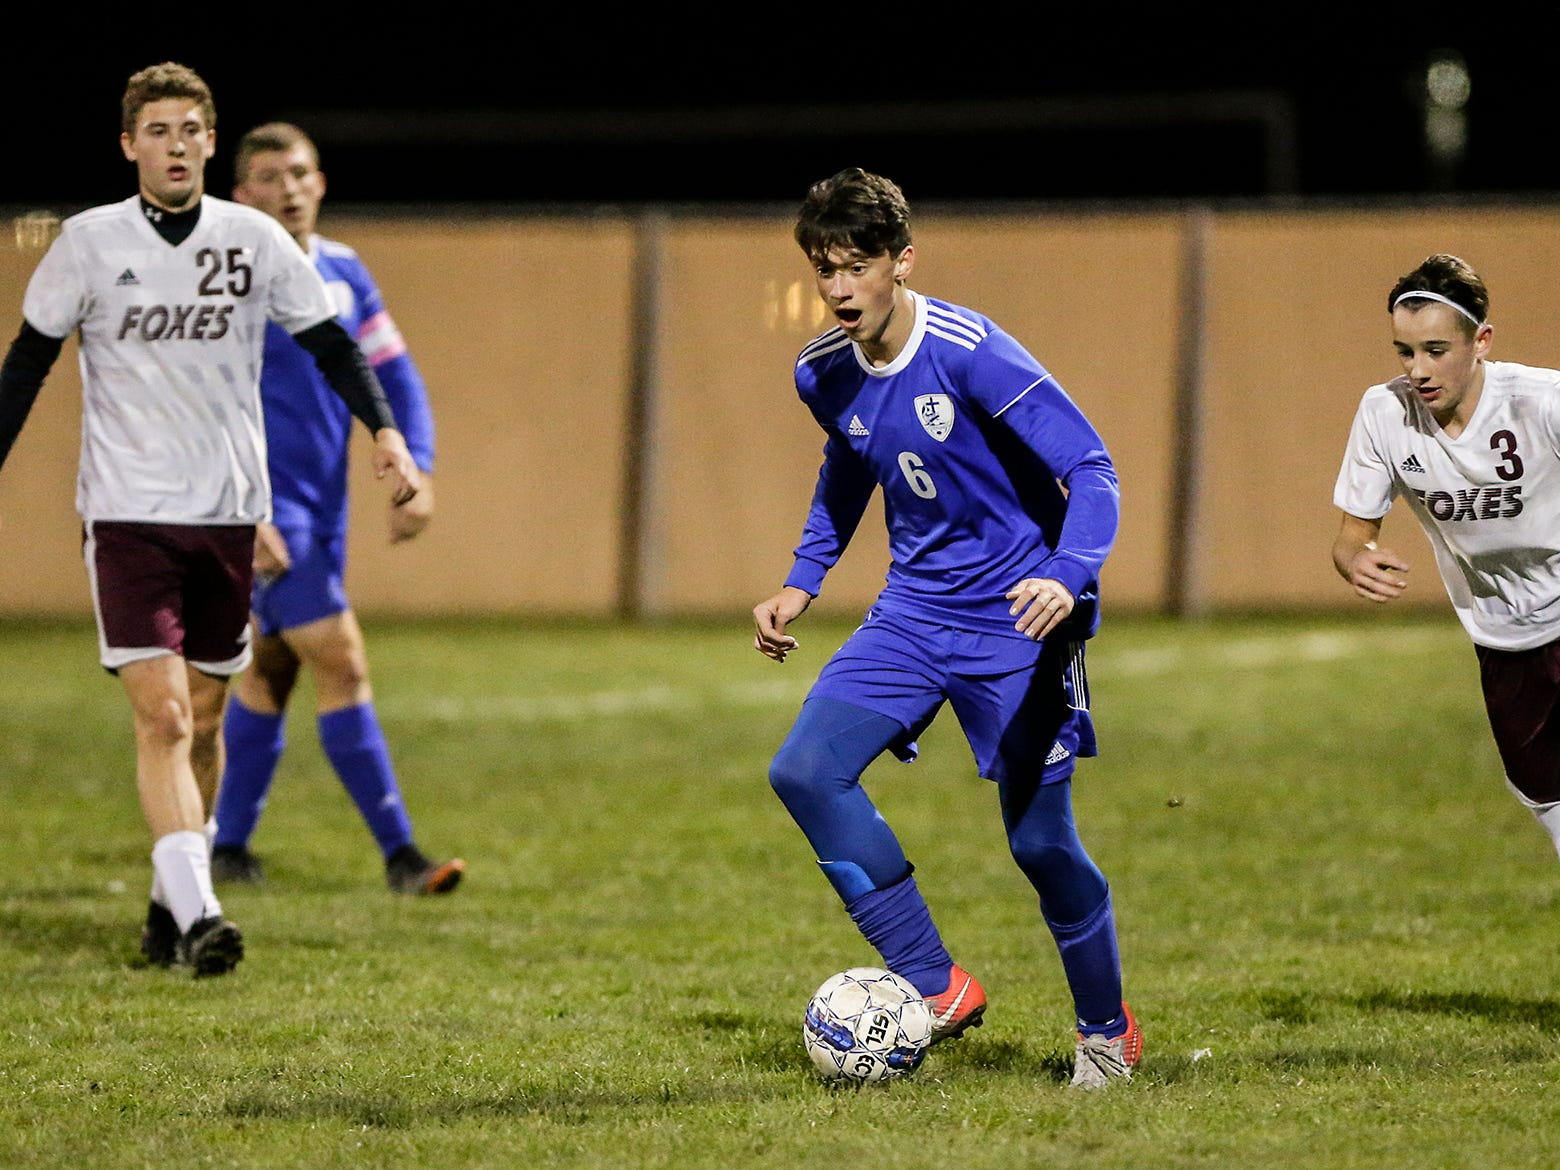 Winnebago Lutheran Academy soccer's Colin Knoblock controls the ball against Omro High School during their WIAA regional playoff game Thursday, October 18, 2018 in Fond du Lac, Wisconsin. Doug Raflik/USA TODAY NETWORK-Wisconsin